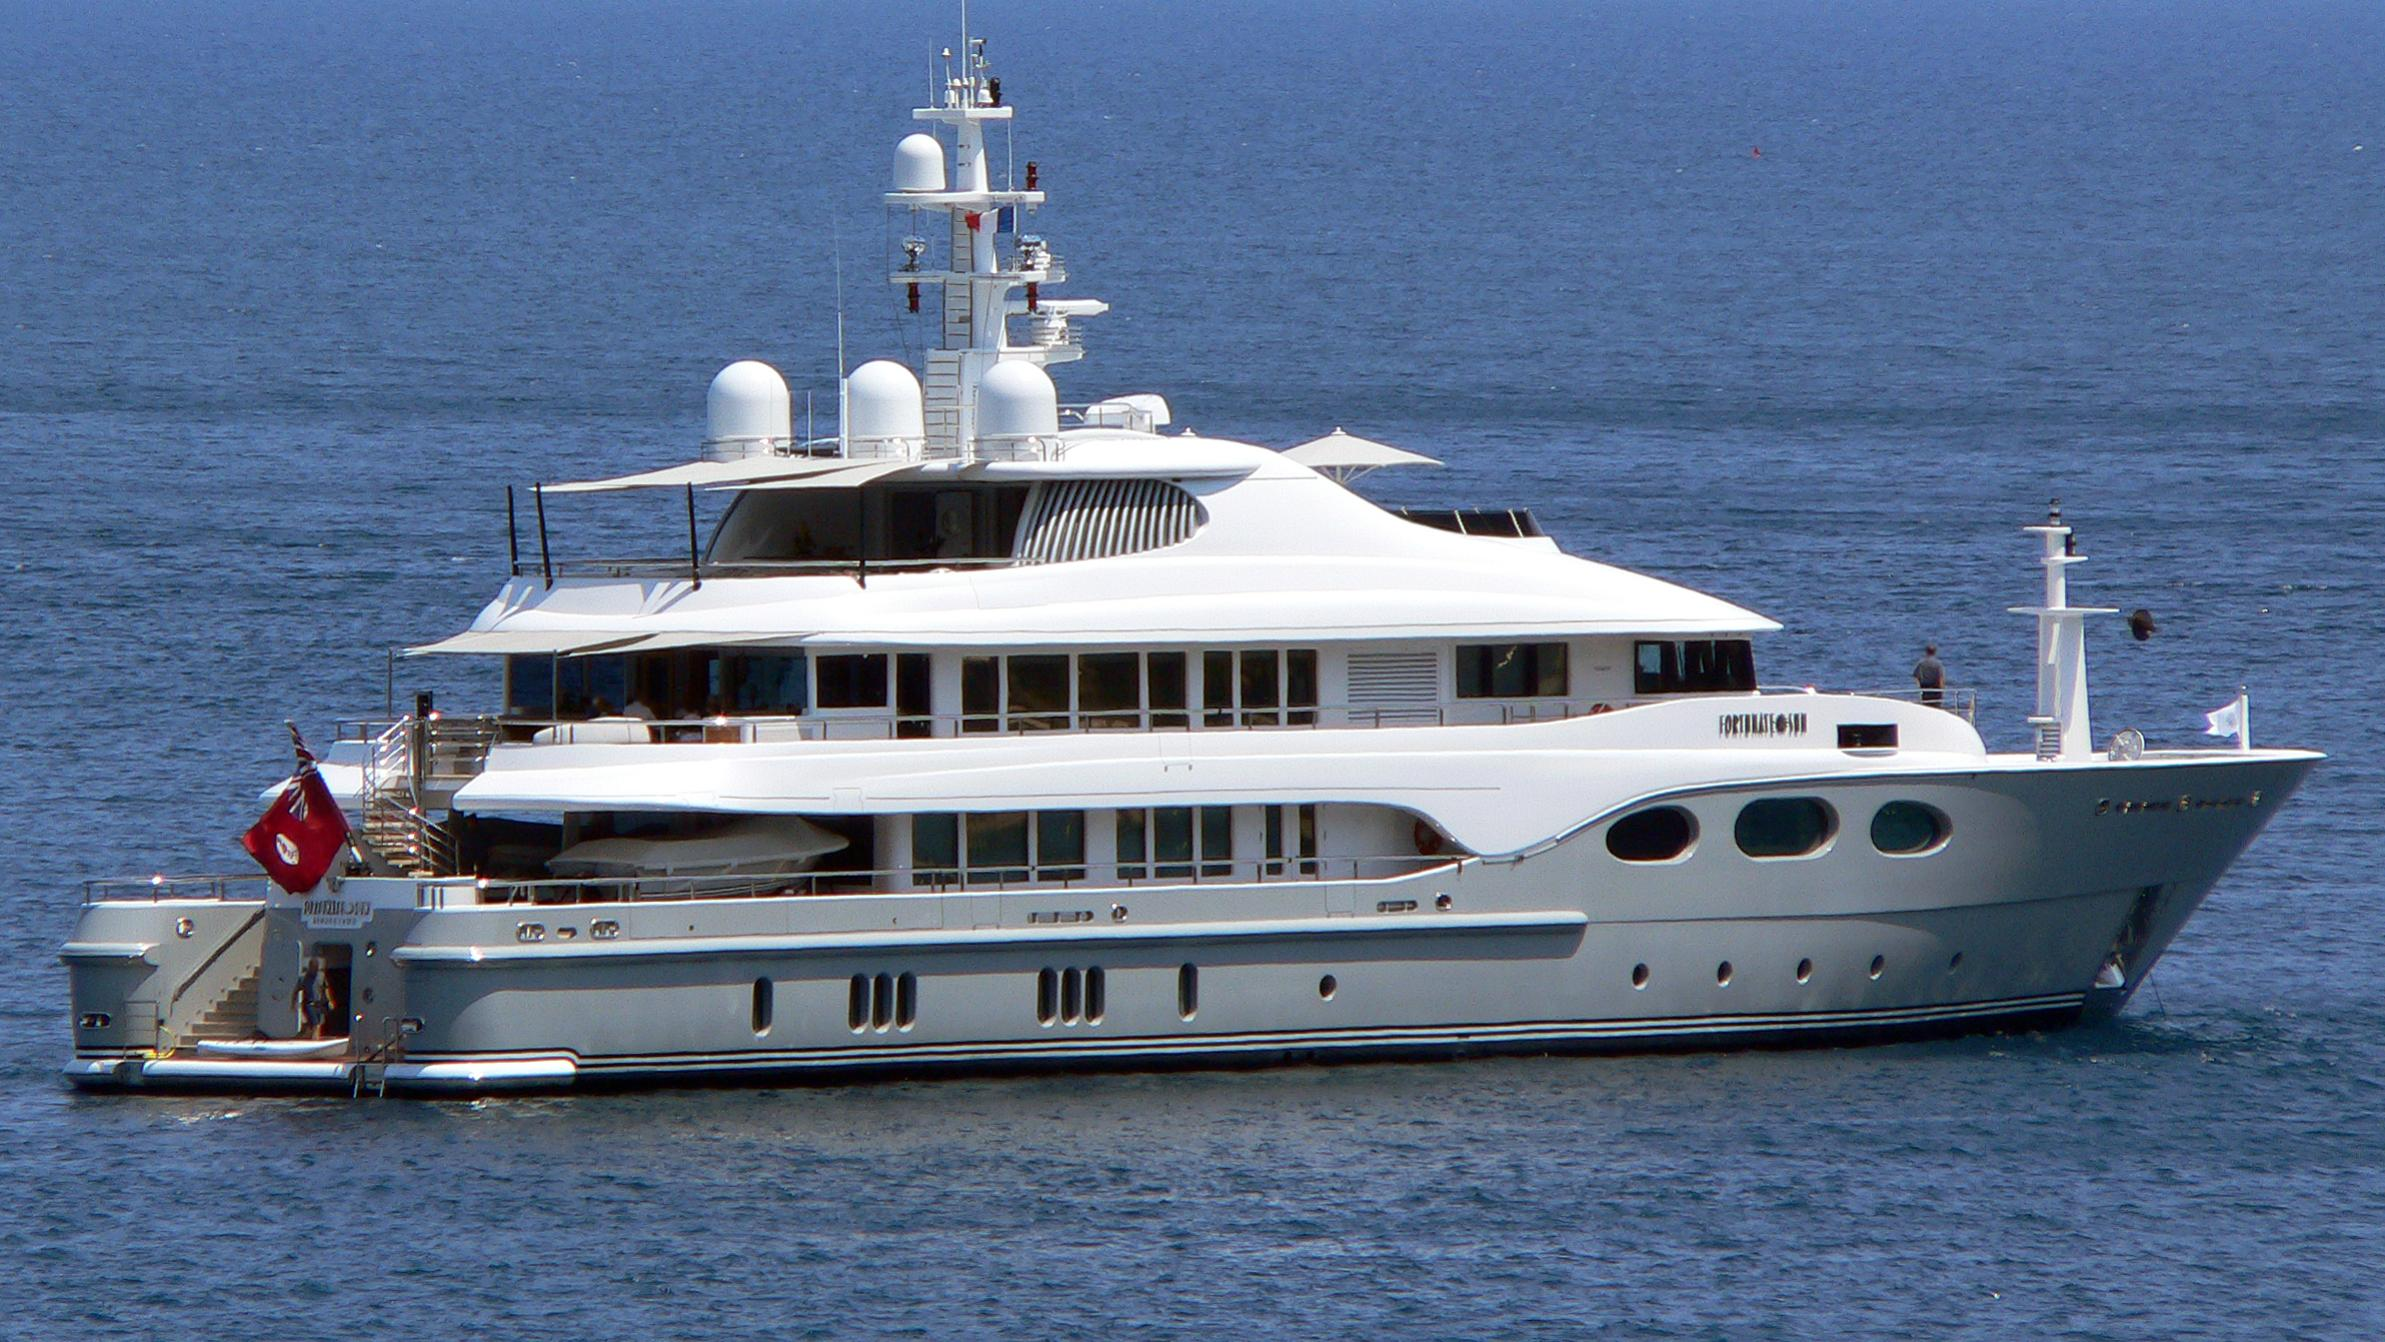 fortunate-sun-motor-yacht-oceanfast-2003-54m-blue-sea